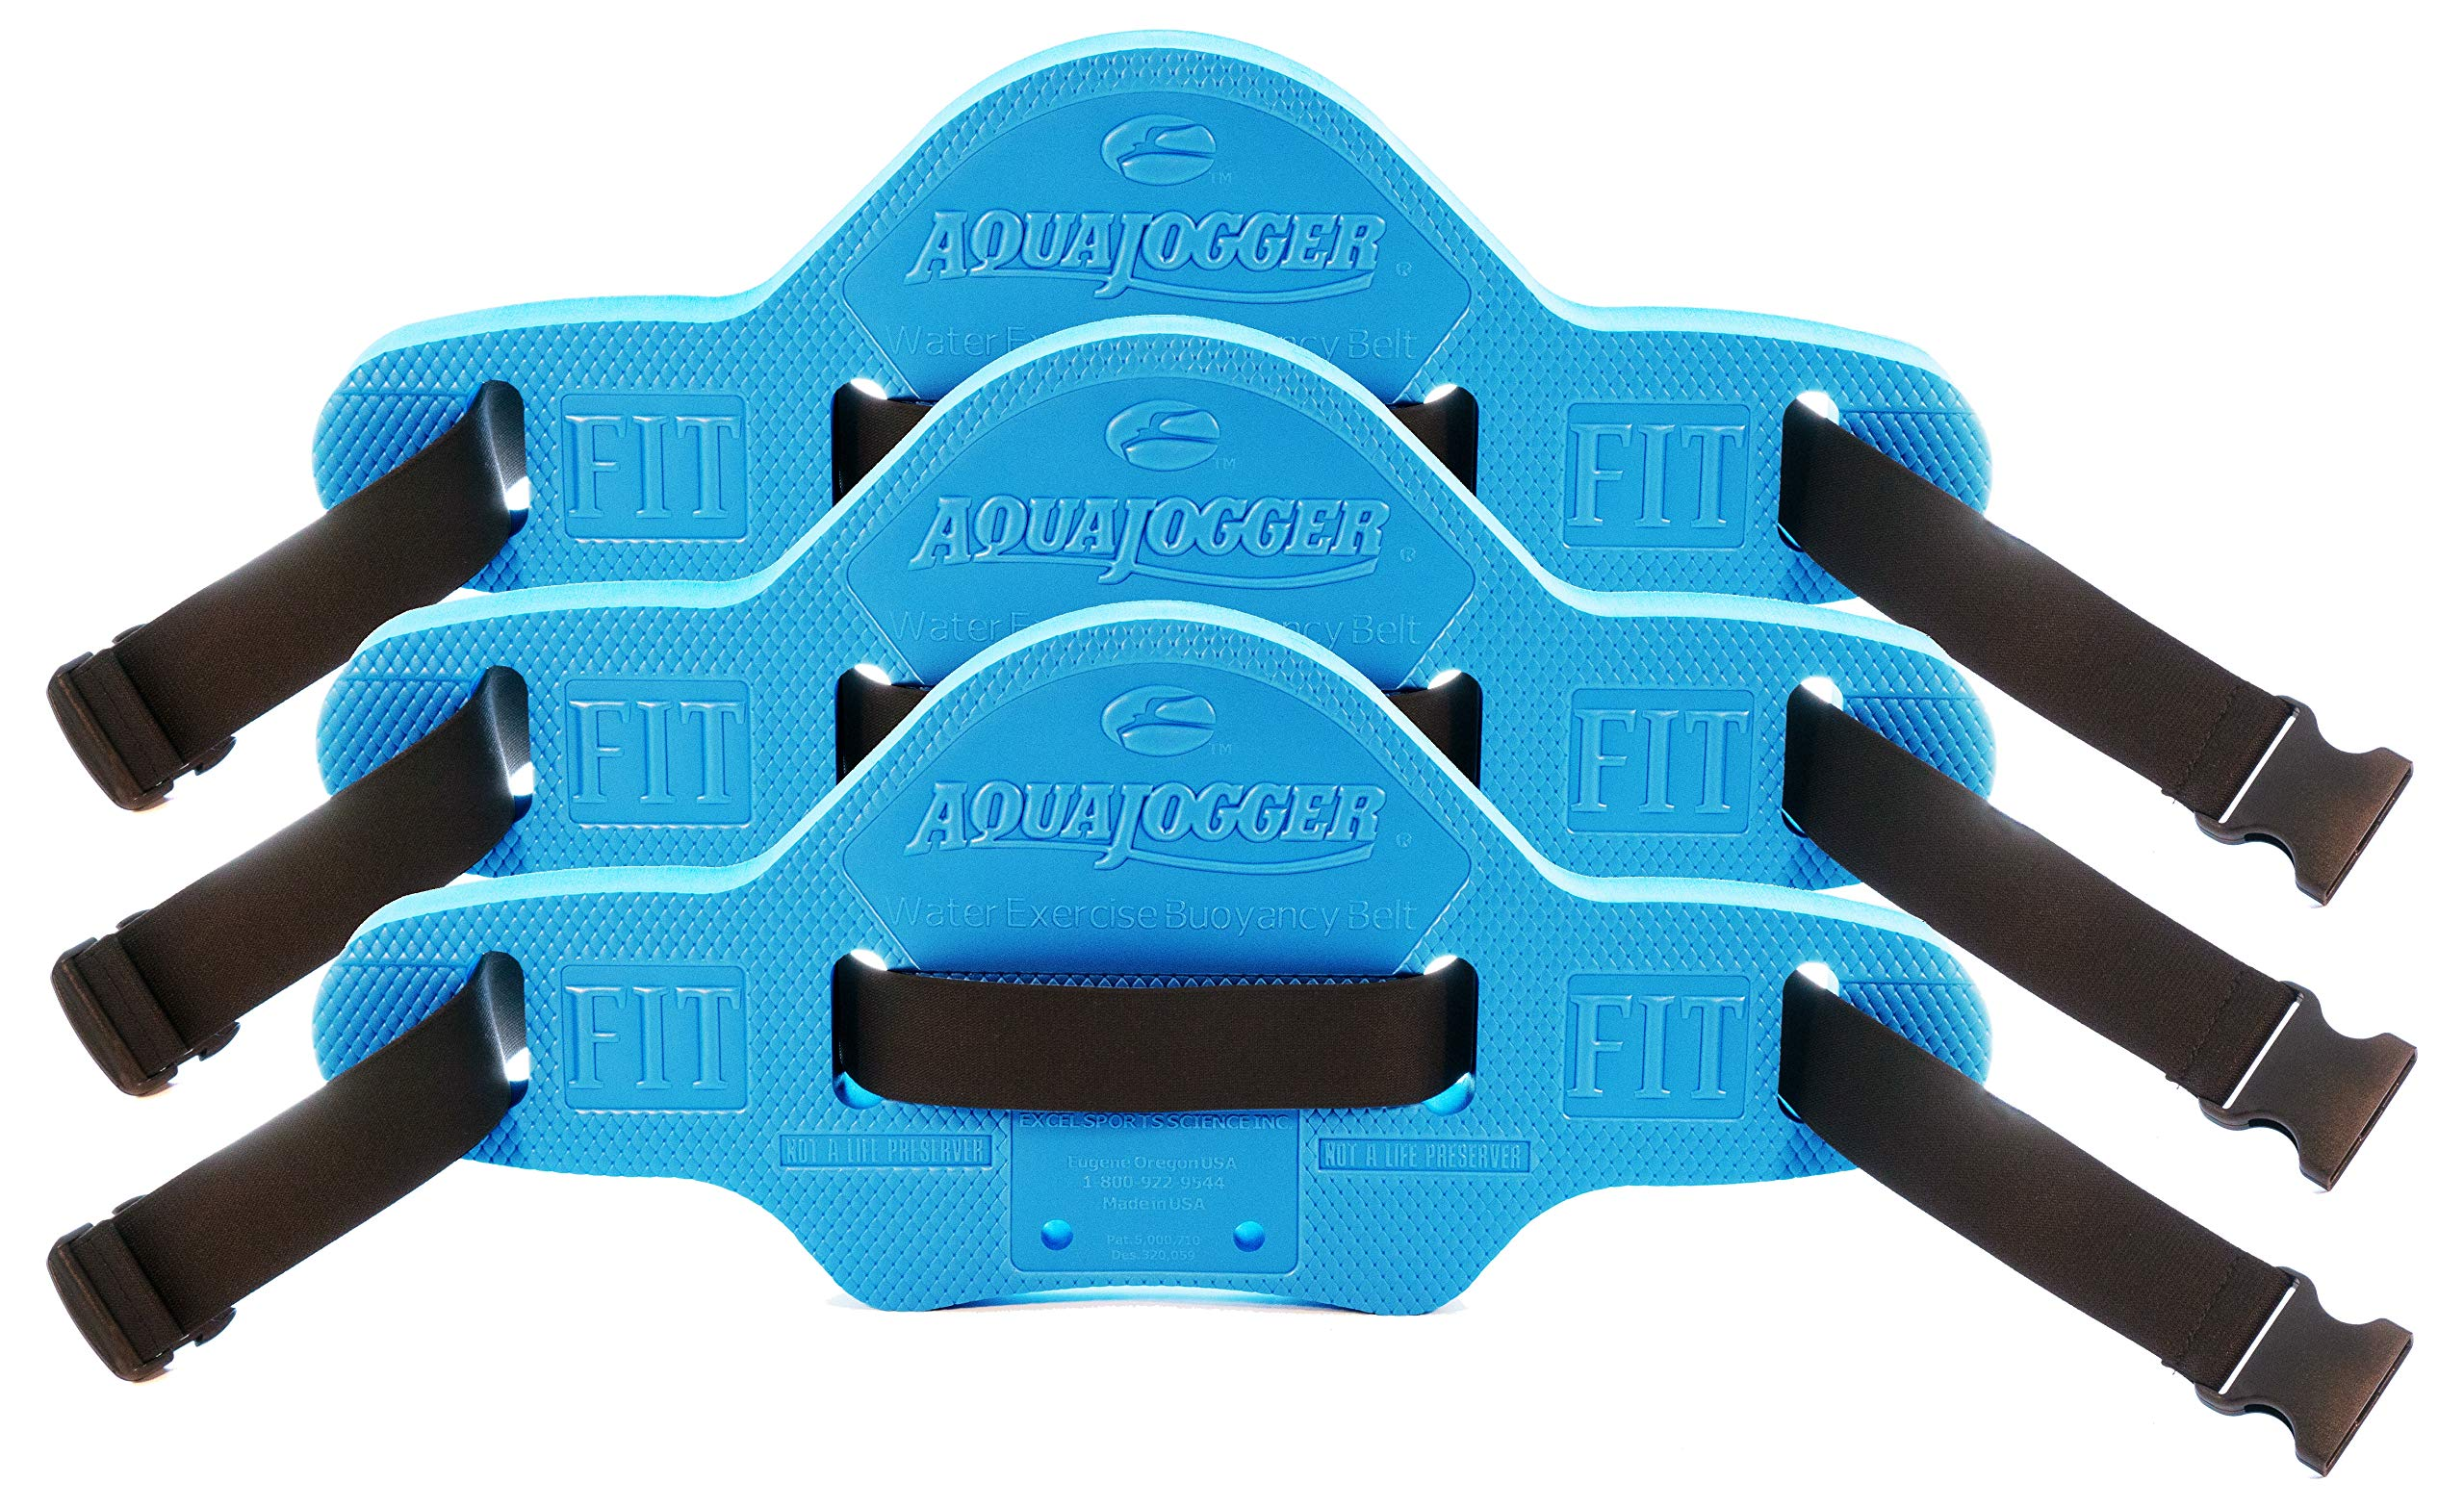 AQUAJOGGER Fit Blue Belt 3 Pack Tapered Sides for Narrow Waists,The Leader in Aquatics Exercise, Suspends Body Vertically in Water, Pool Fitness by AQUAJOGGER